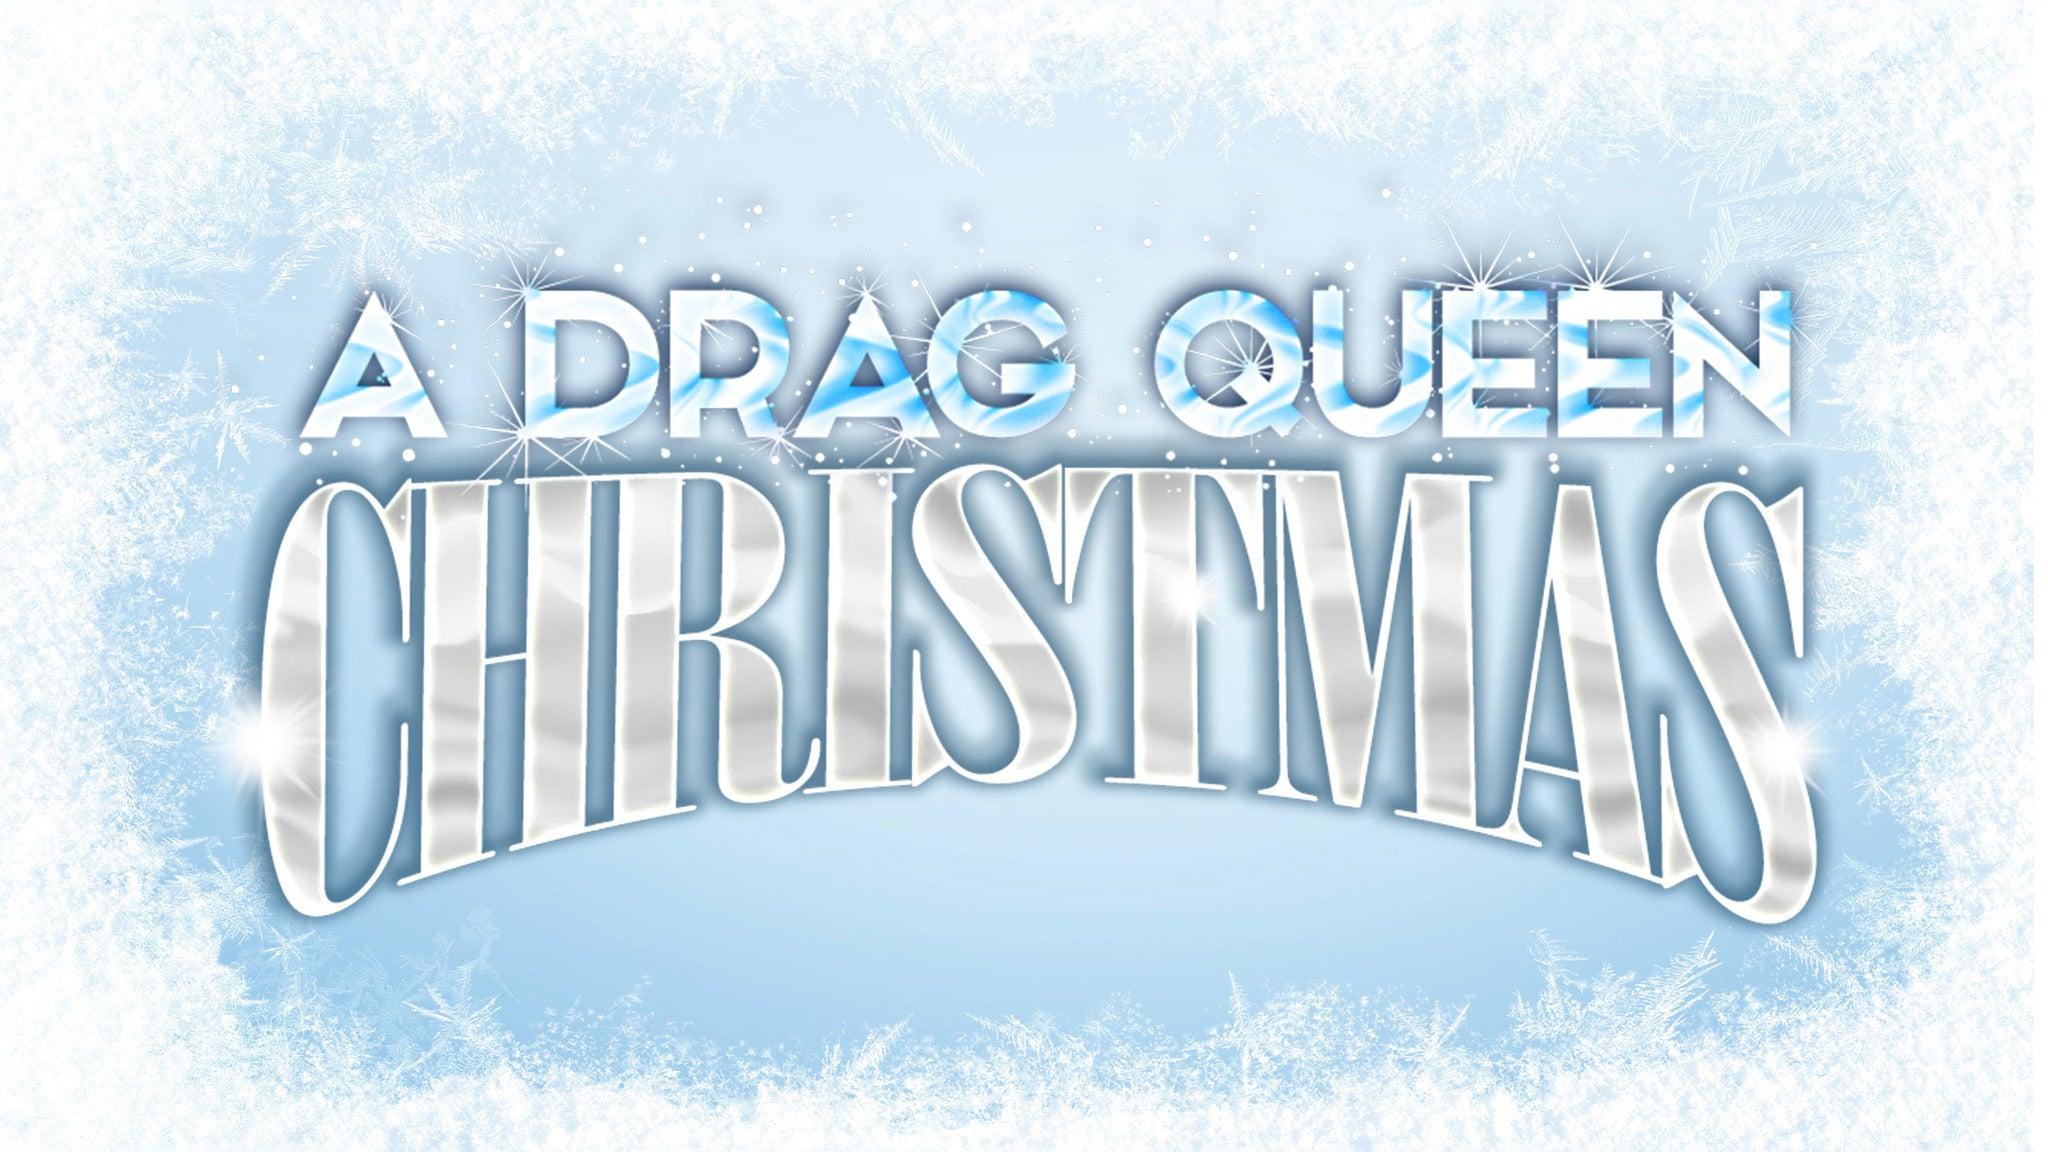 A Drag Queen Christmas Tour - 2021 at Warner Theatre